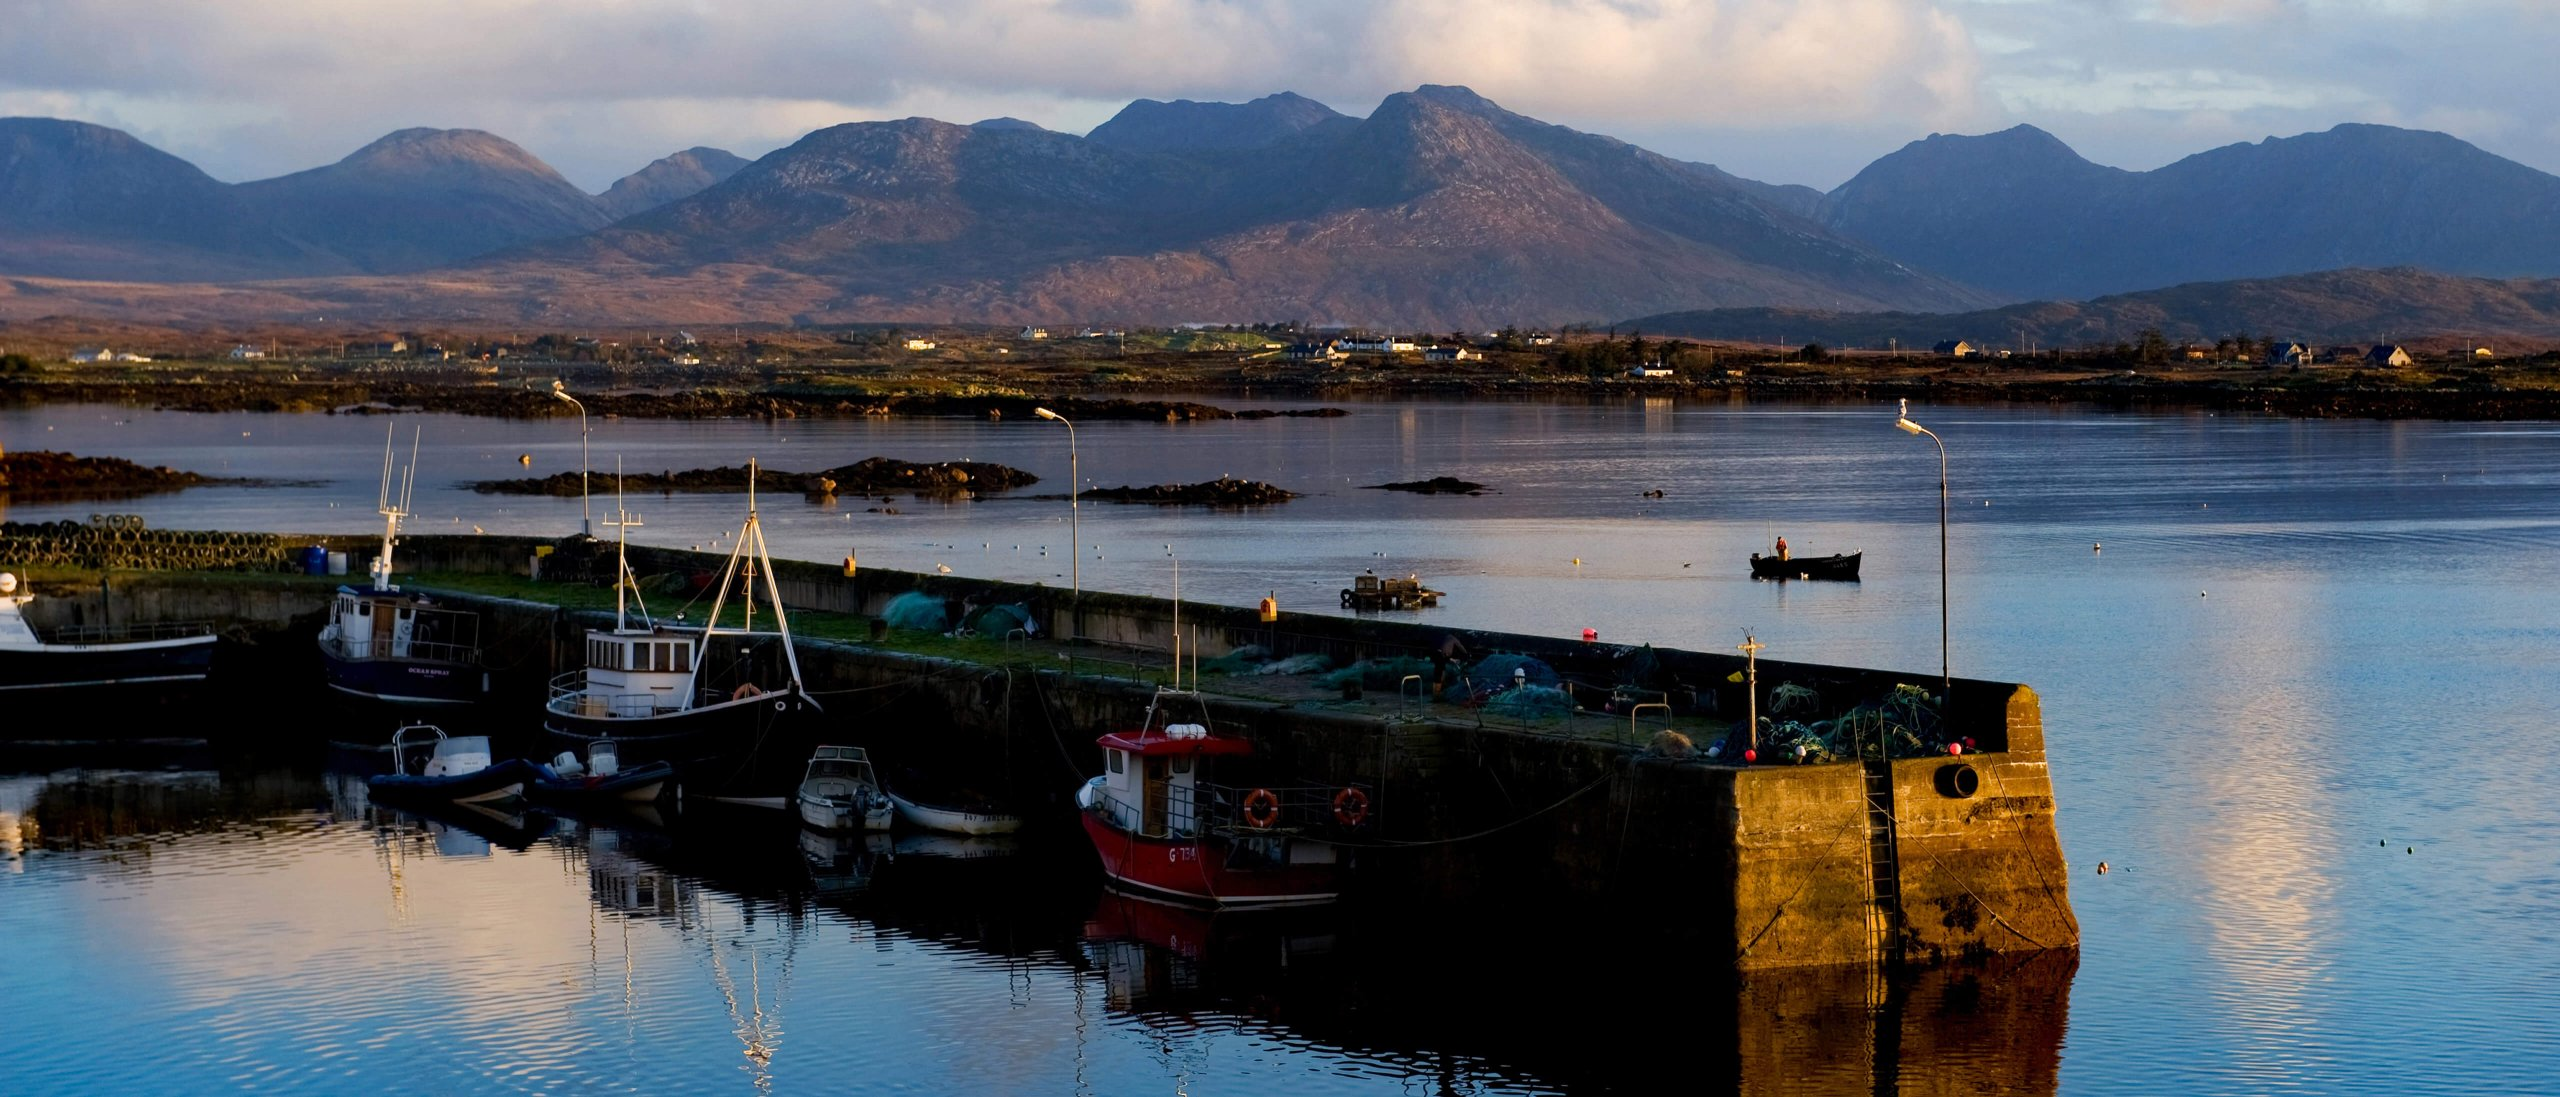 Pier in Roundstone with Connemara mountain range in background